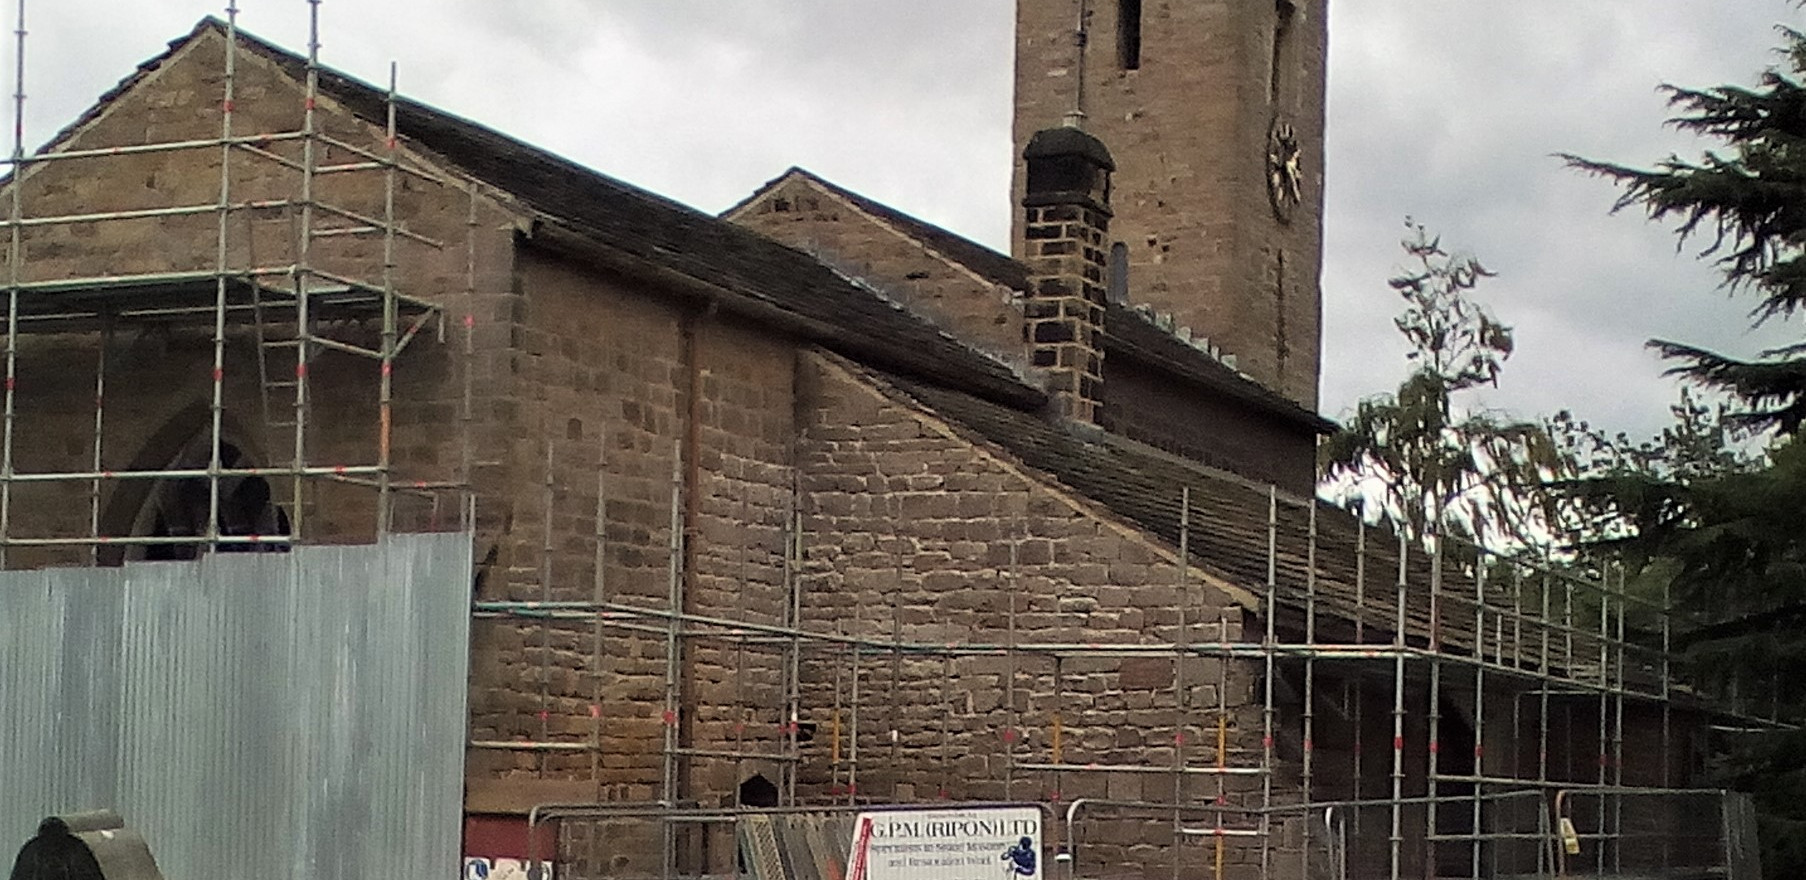 Scaffolding at All Hallows